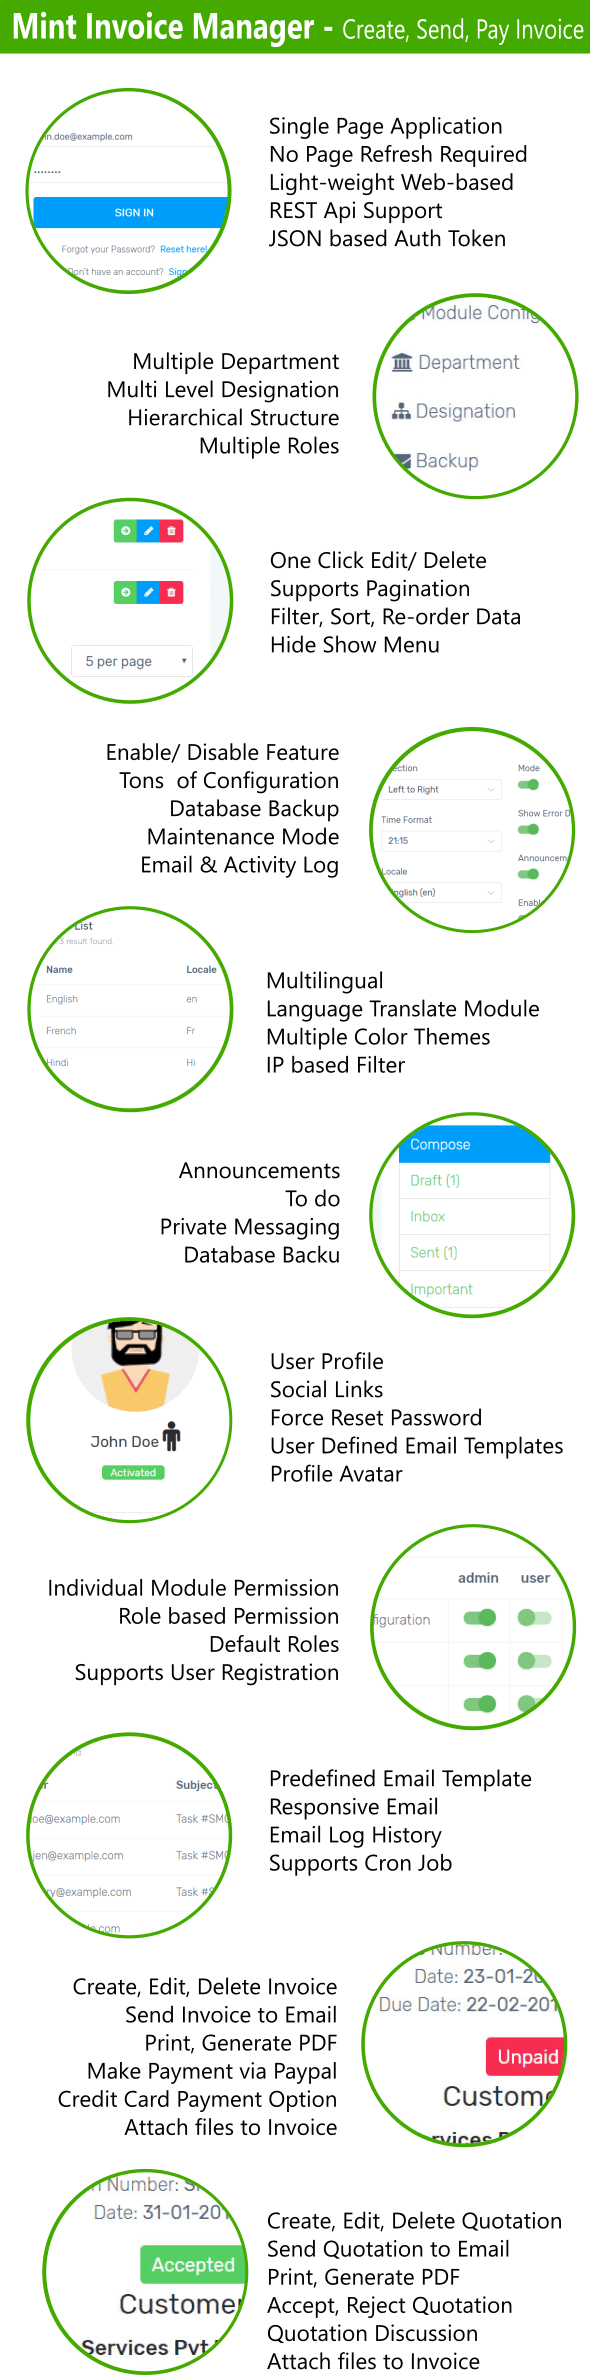 Mint Invoice - Create, Send, Pay Invoices, Paypal & Stripe Payment Gateway - 4